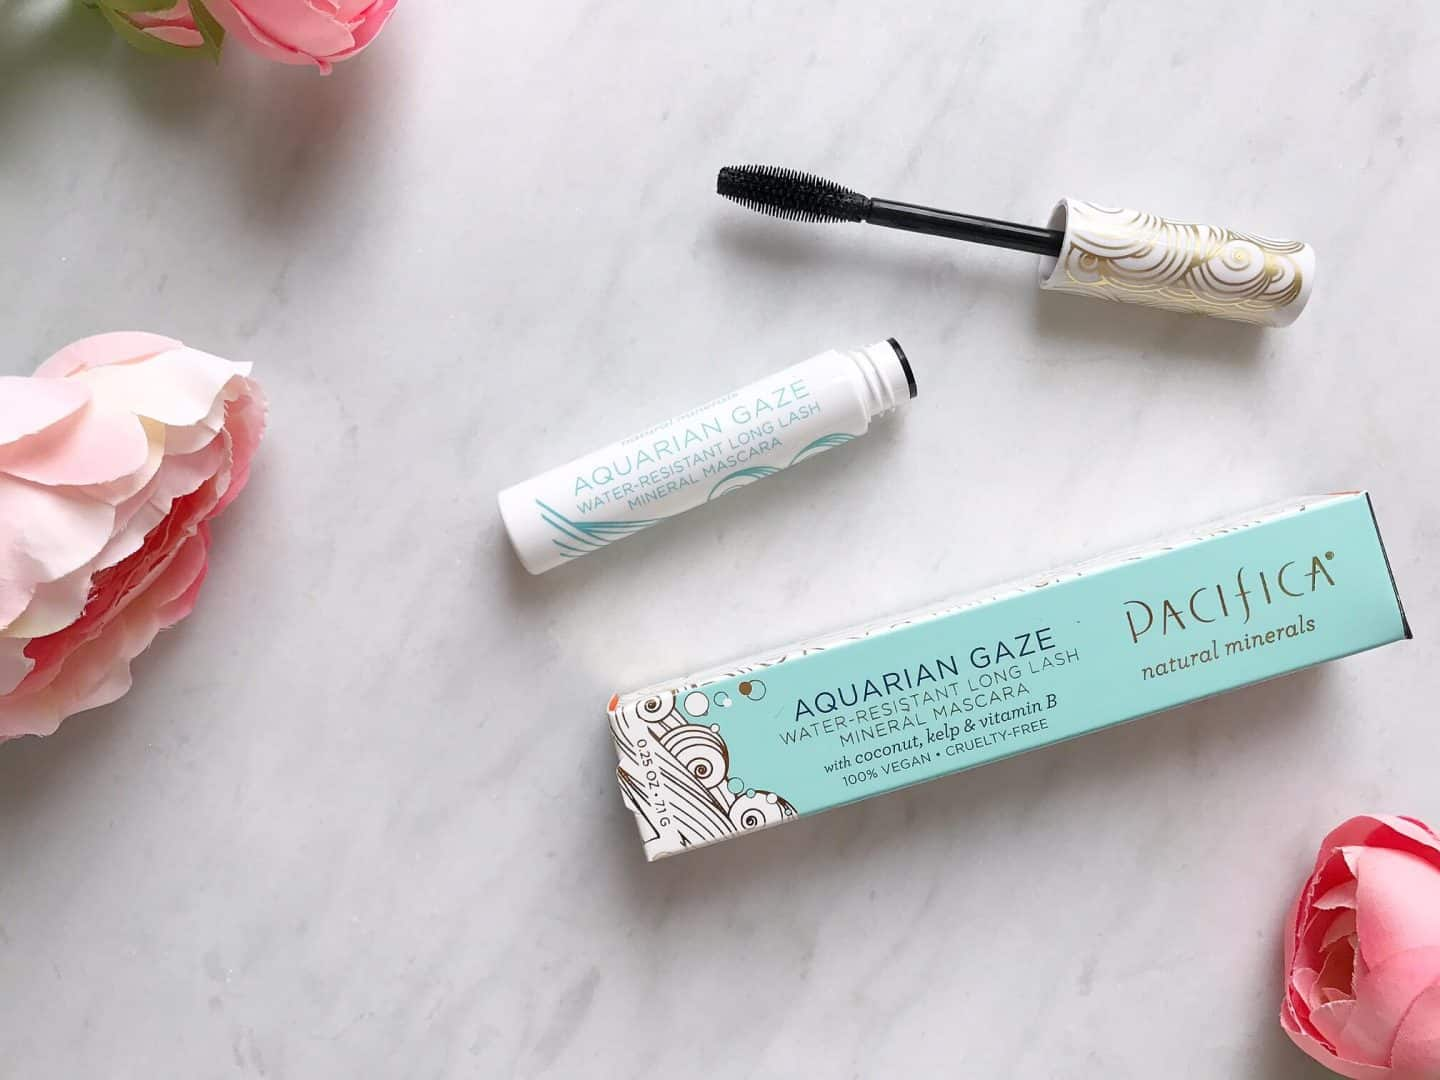 Pacifica Aquarian Gaze Mineral Mascara